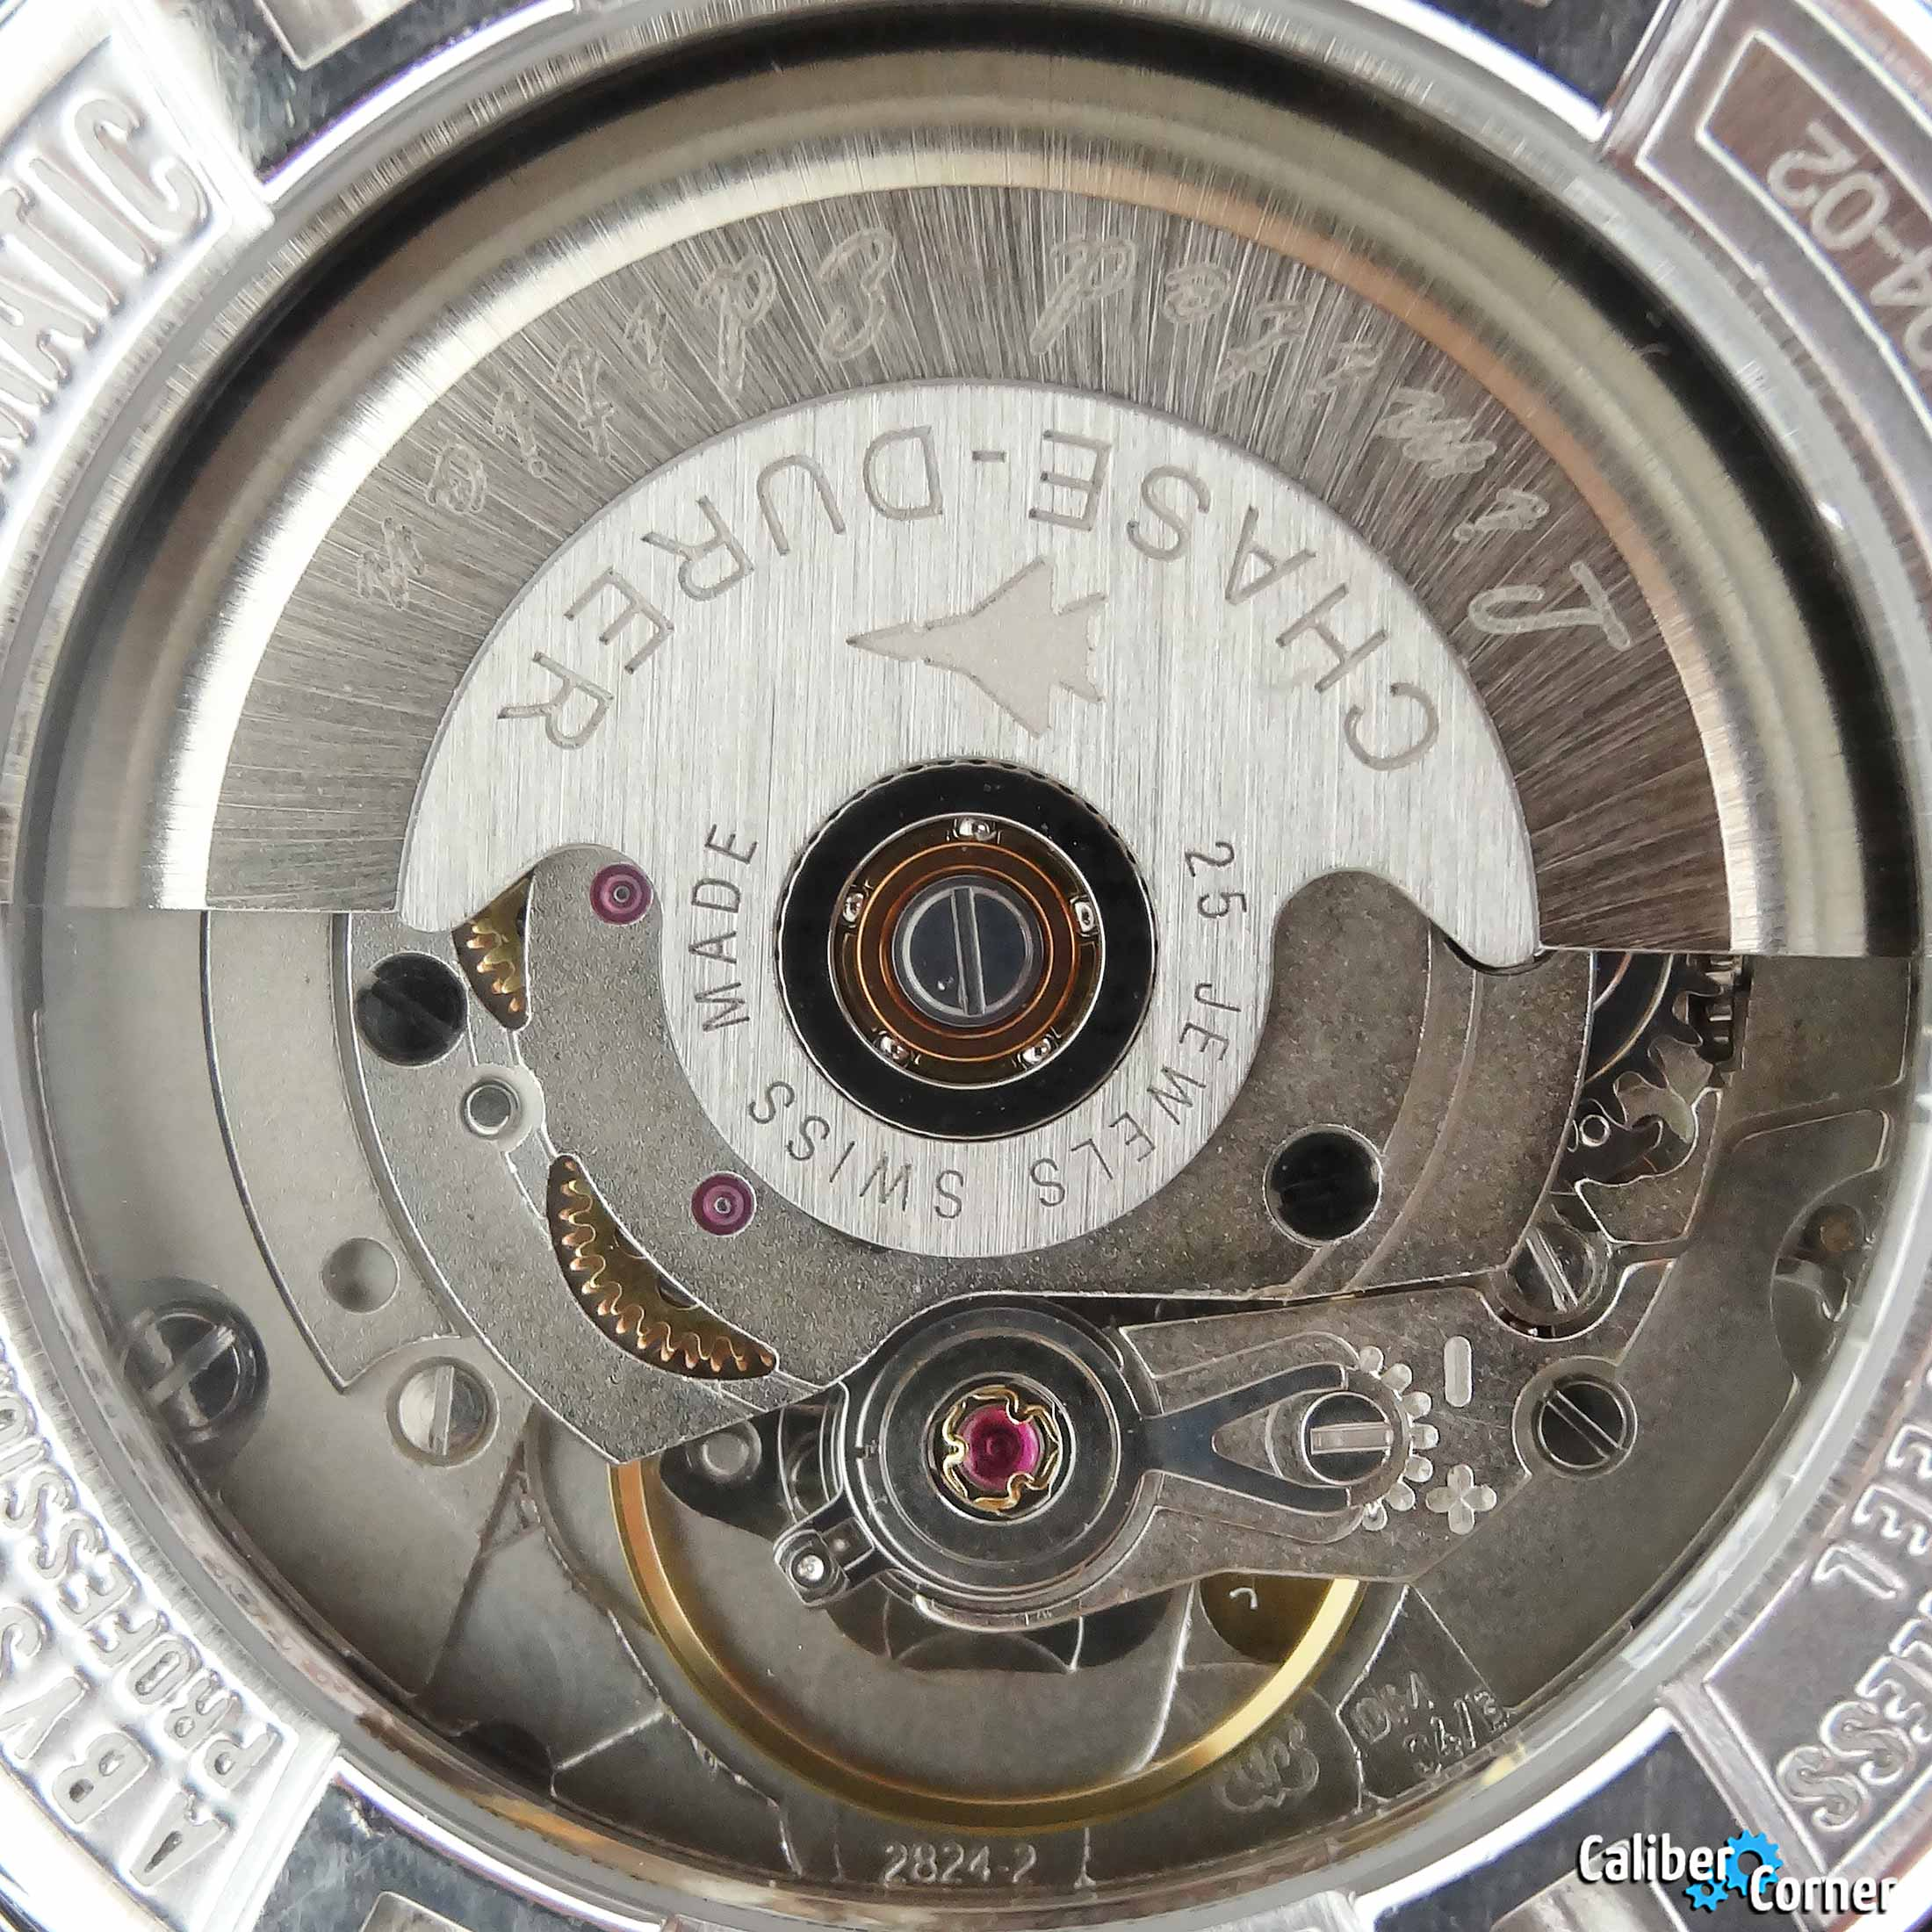 ETA caliber 2824-2 in a Chase Durer watch